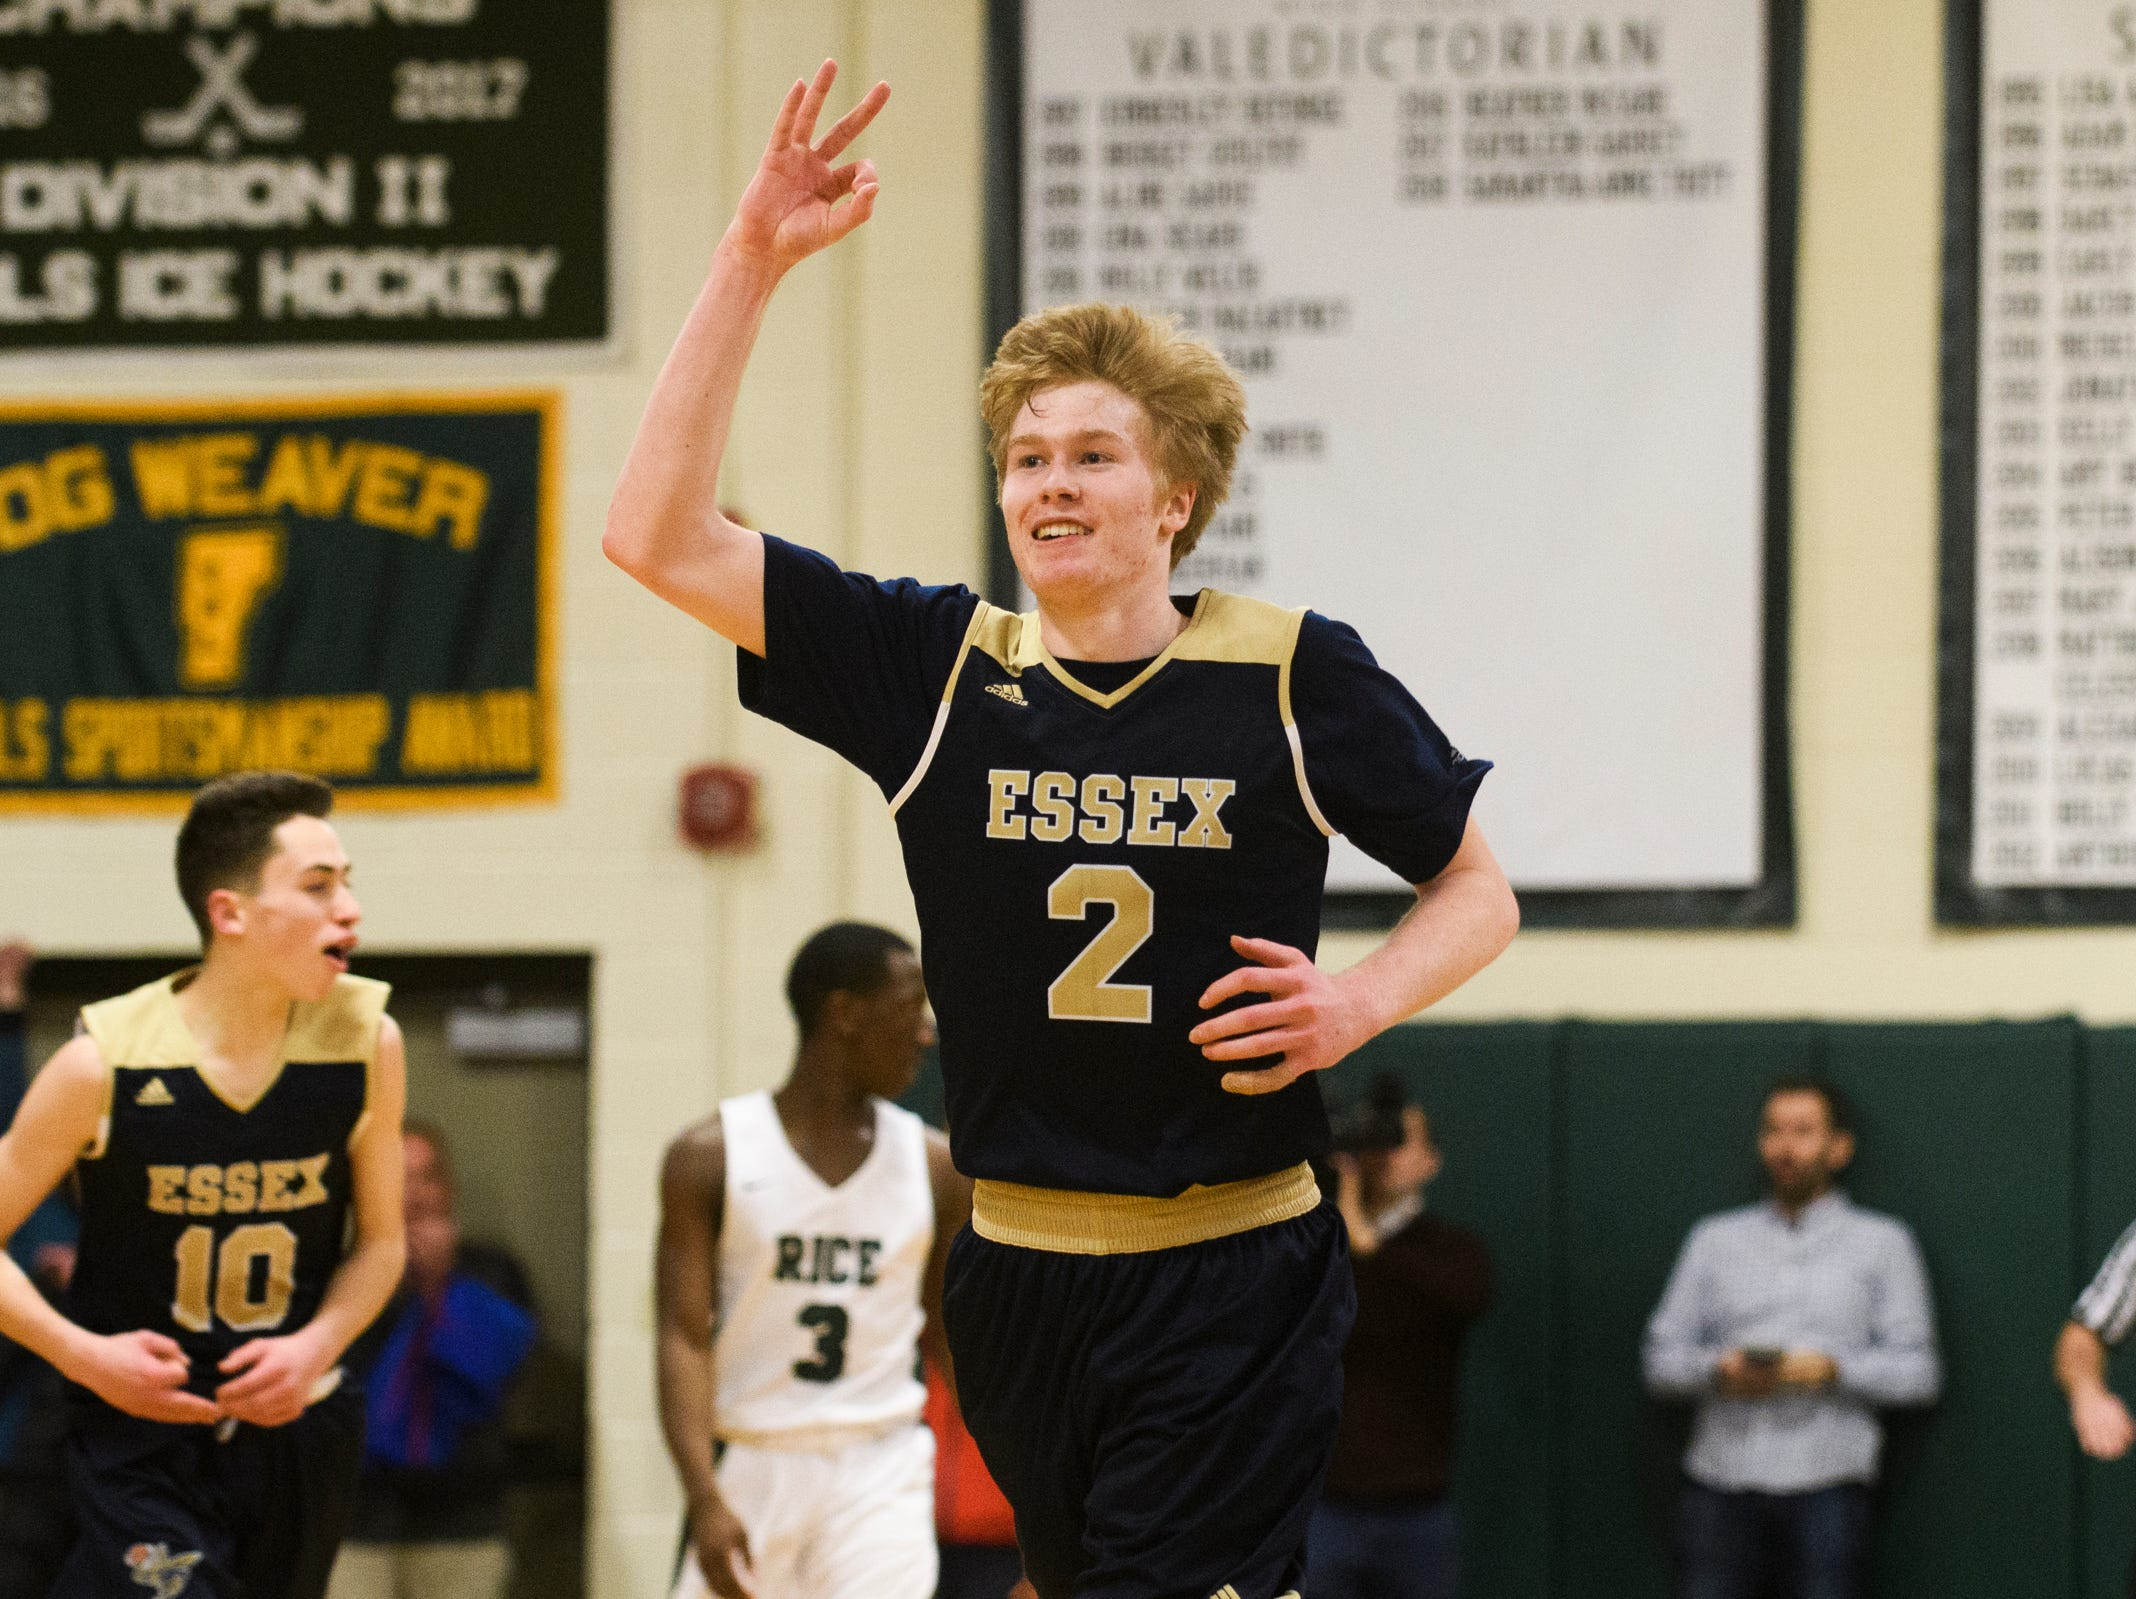 Essex's Stephen Astor (2) celebrates after making a 3-pointer during the boys  quarterfinal basketball game between the Essex Hornets and the Rice Green Knights at Rice Memorial High School on Friday night March 8, 2019 in South Burlington, Vermont.